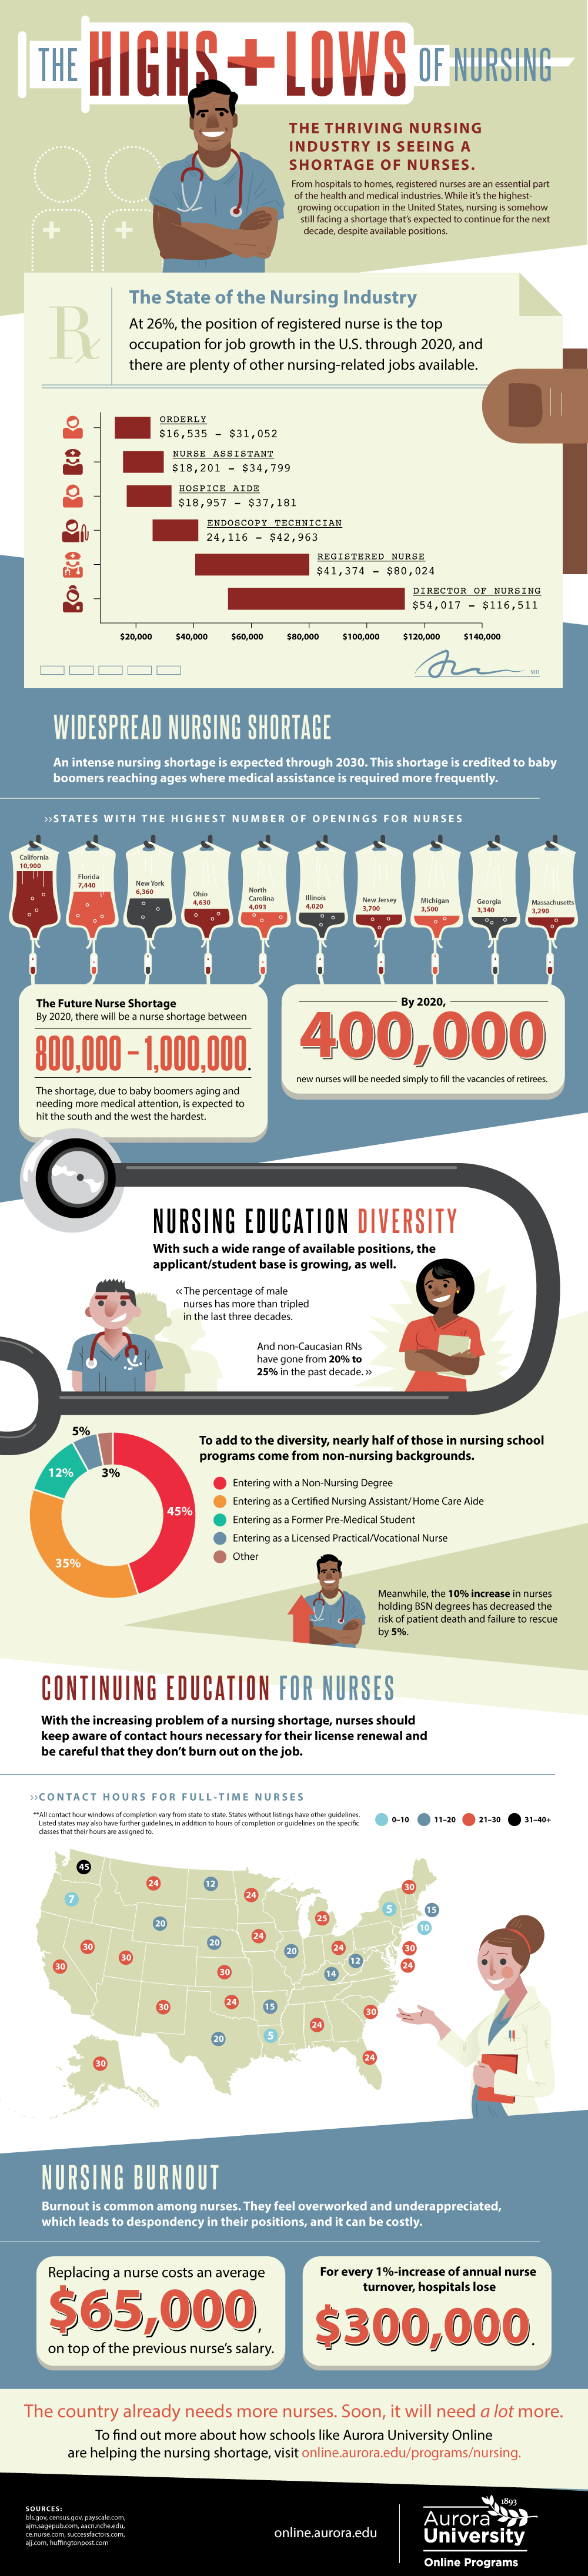 The Highs and Lows of Nursing – Infographic